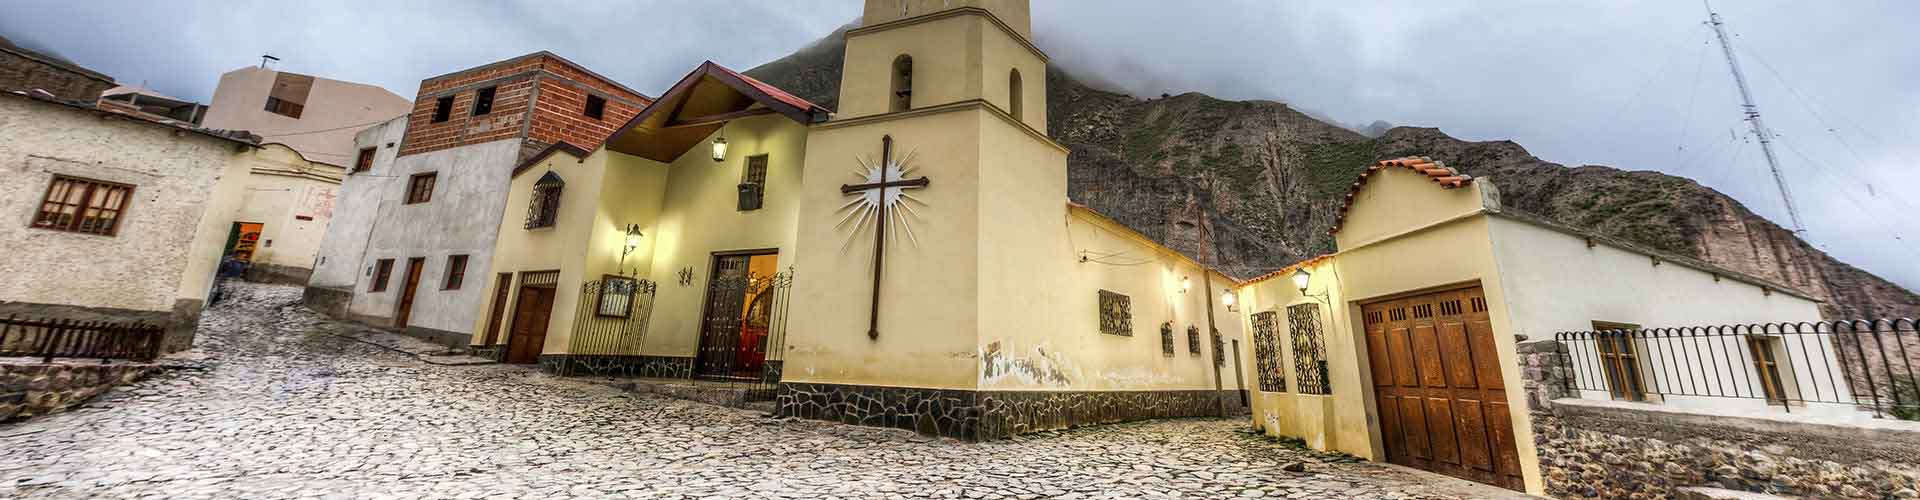 Salta – Hostels in Salta. Maps for Salta, Photos and Reviews for each hostel in Salta.